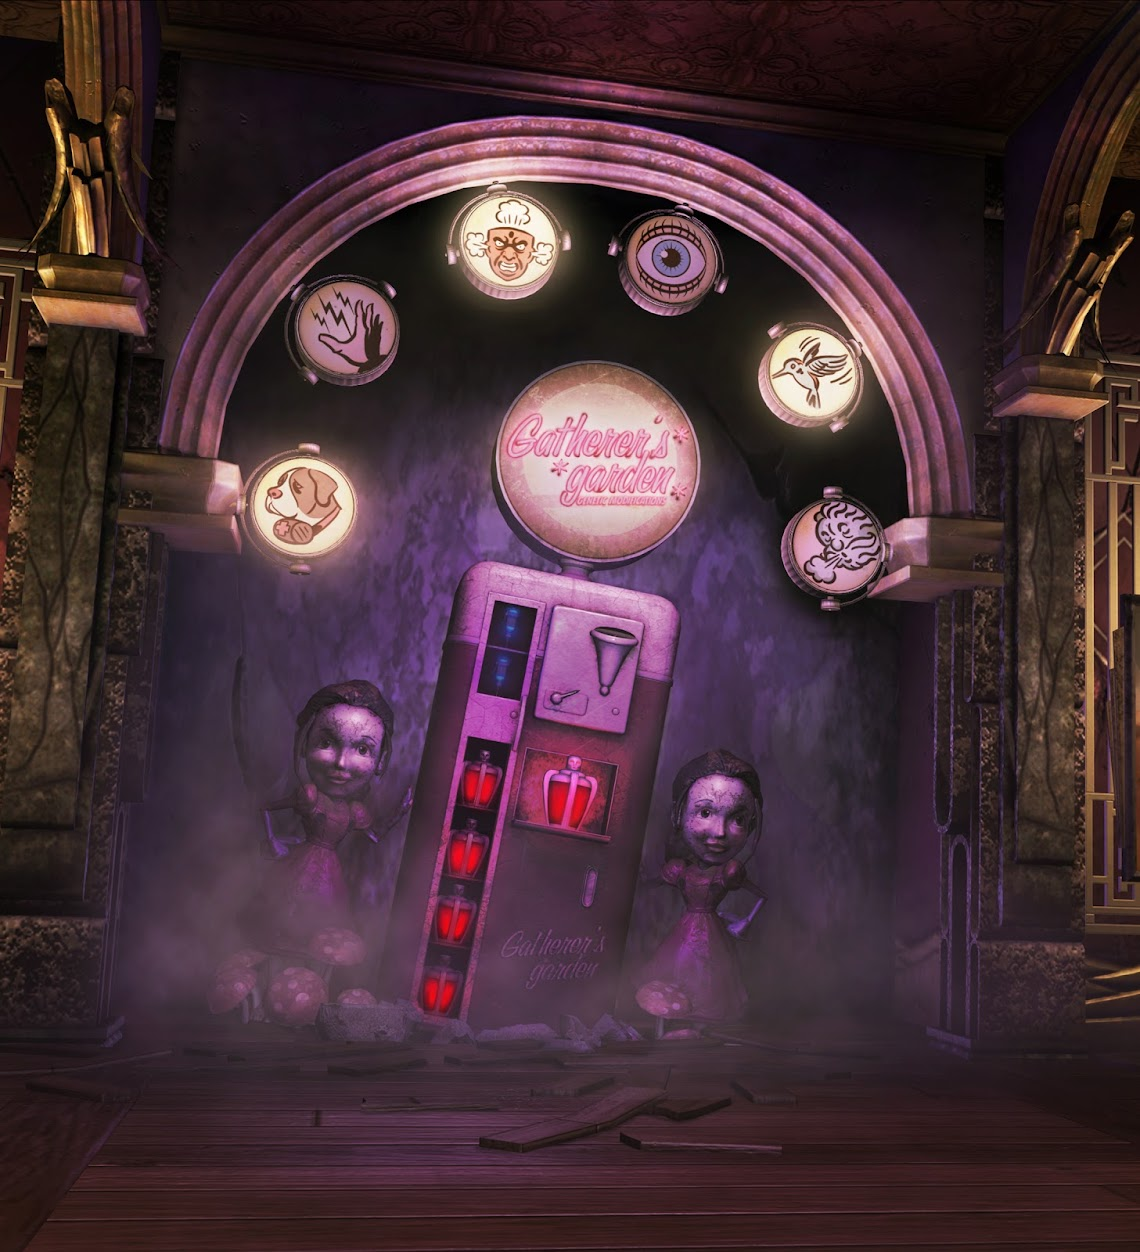 Server troubles hit BioShock PC debut, shares up